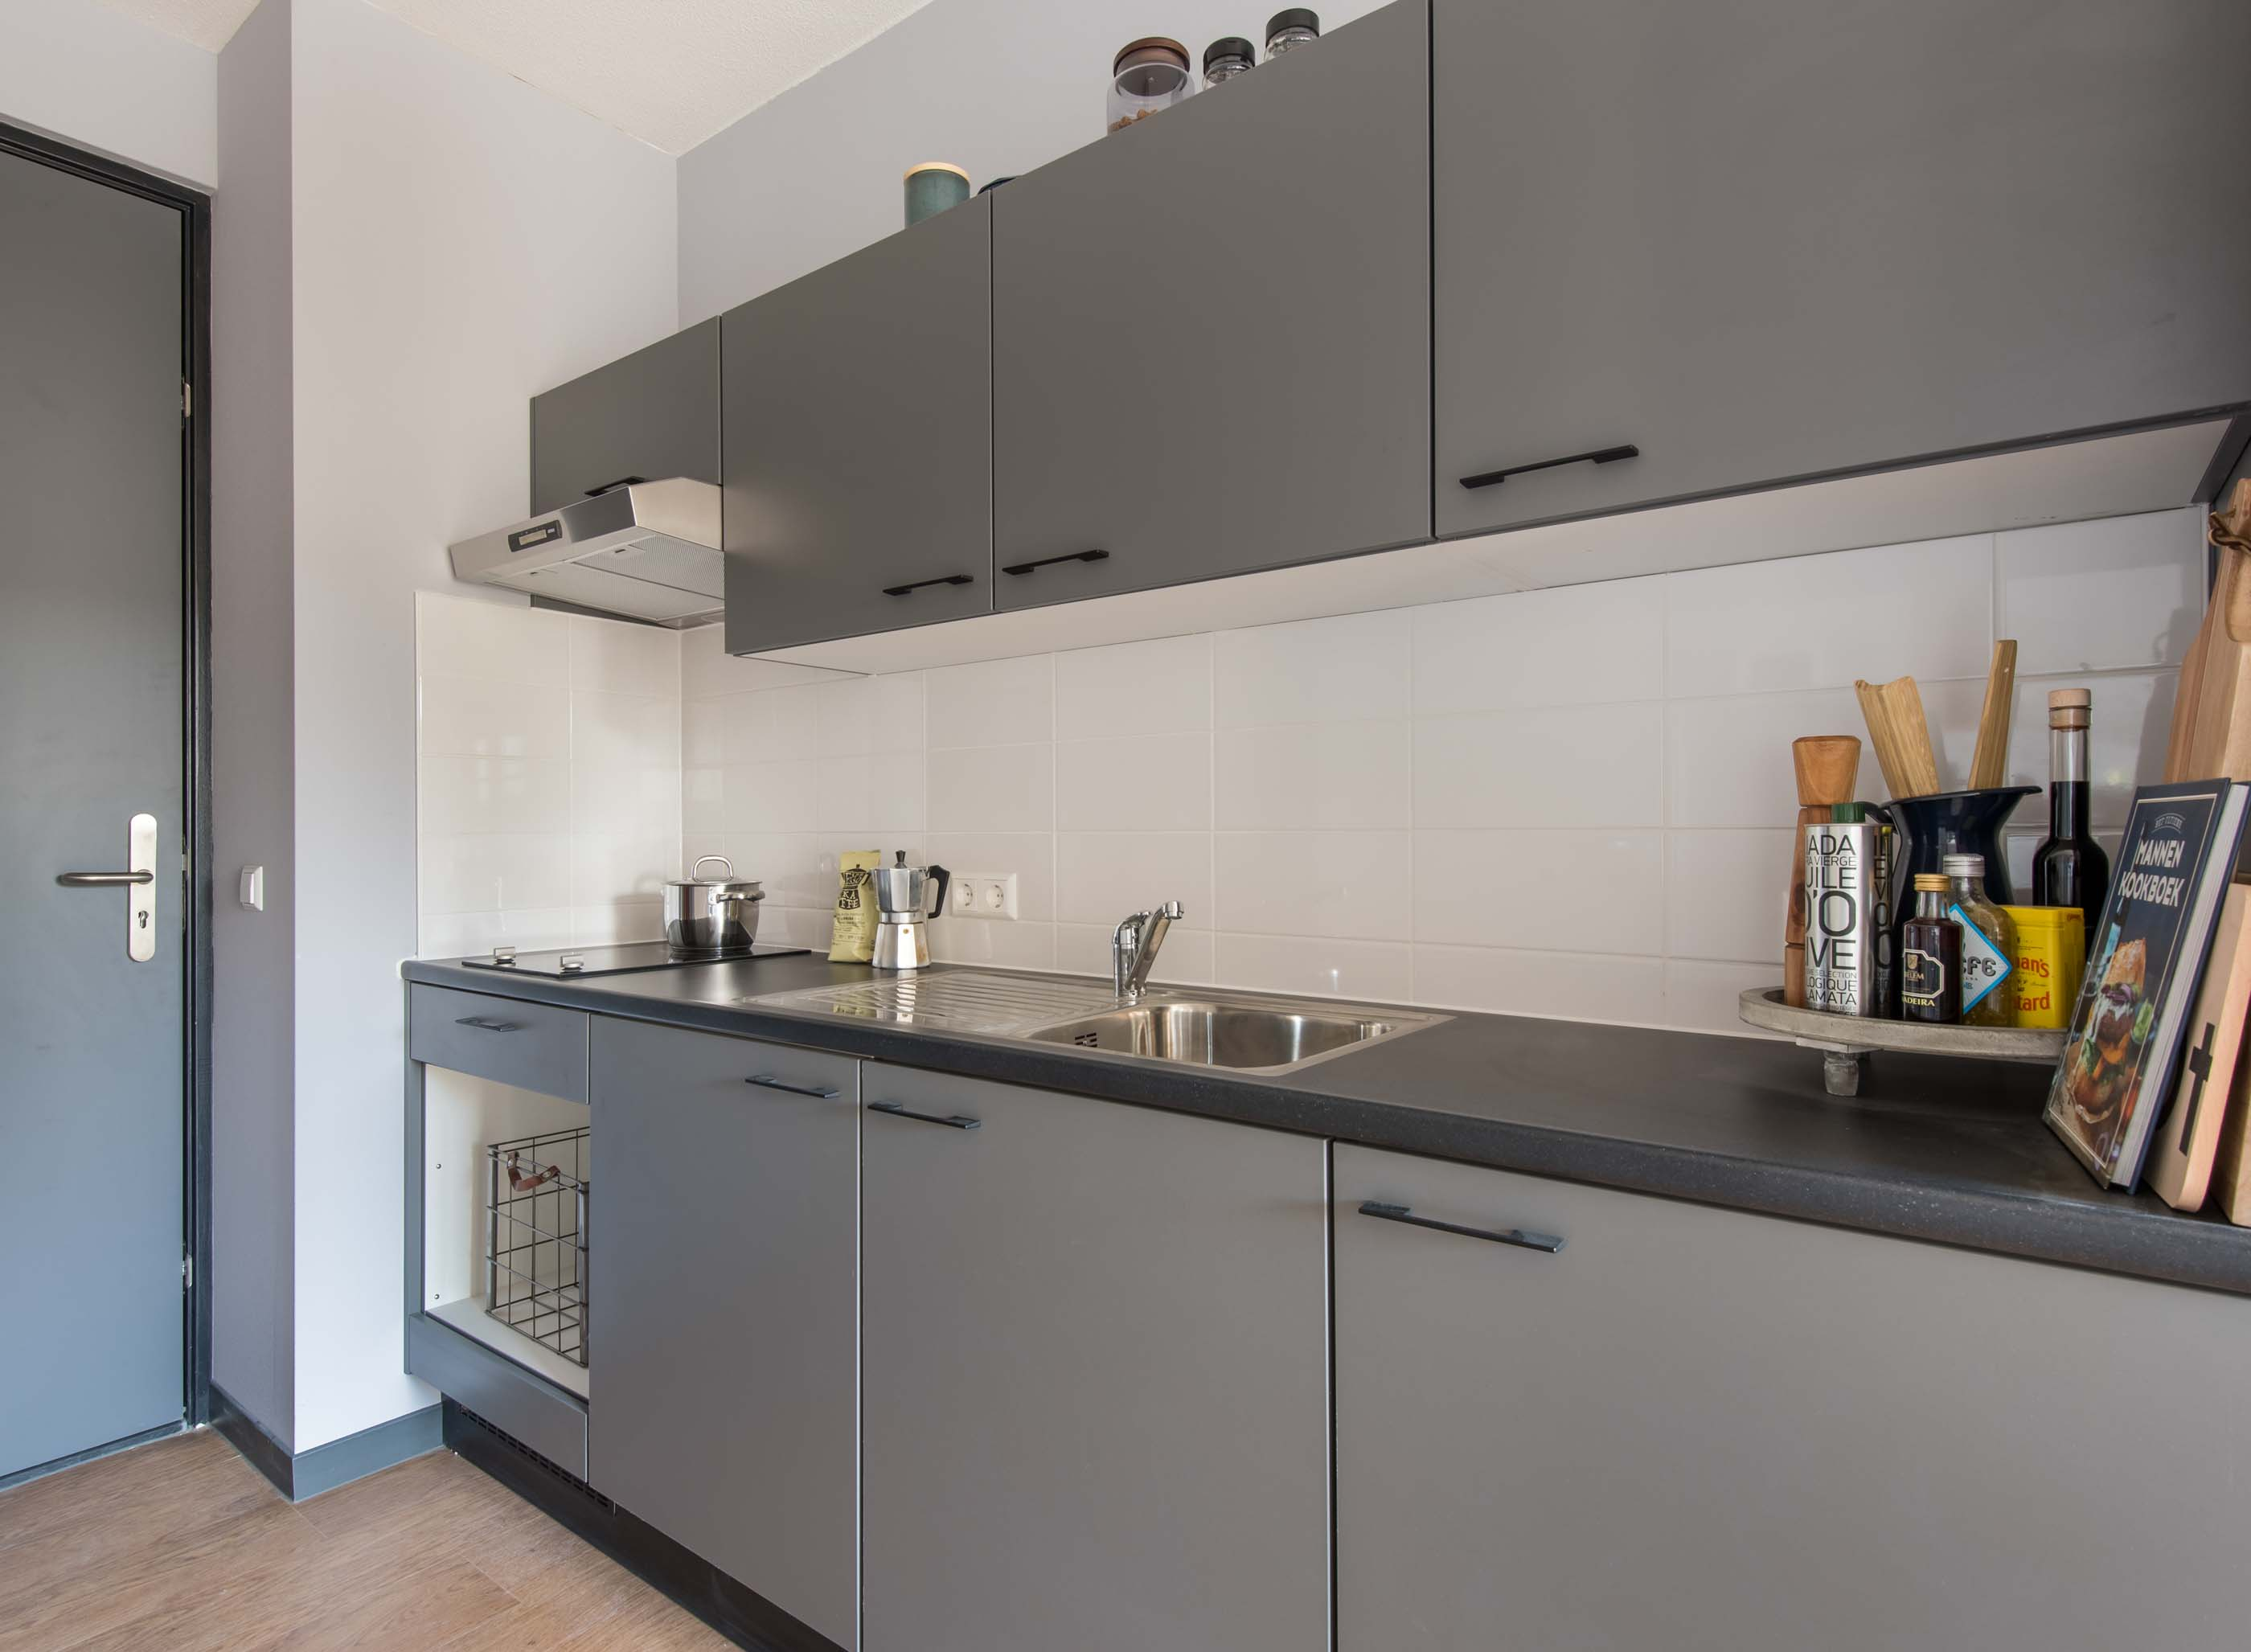 1-bedroom unfurnished apartment in OurDomain Amsterdam Diemen -kitchen